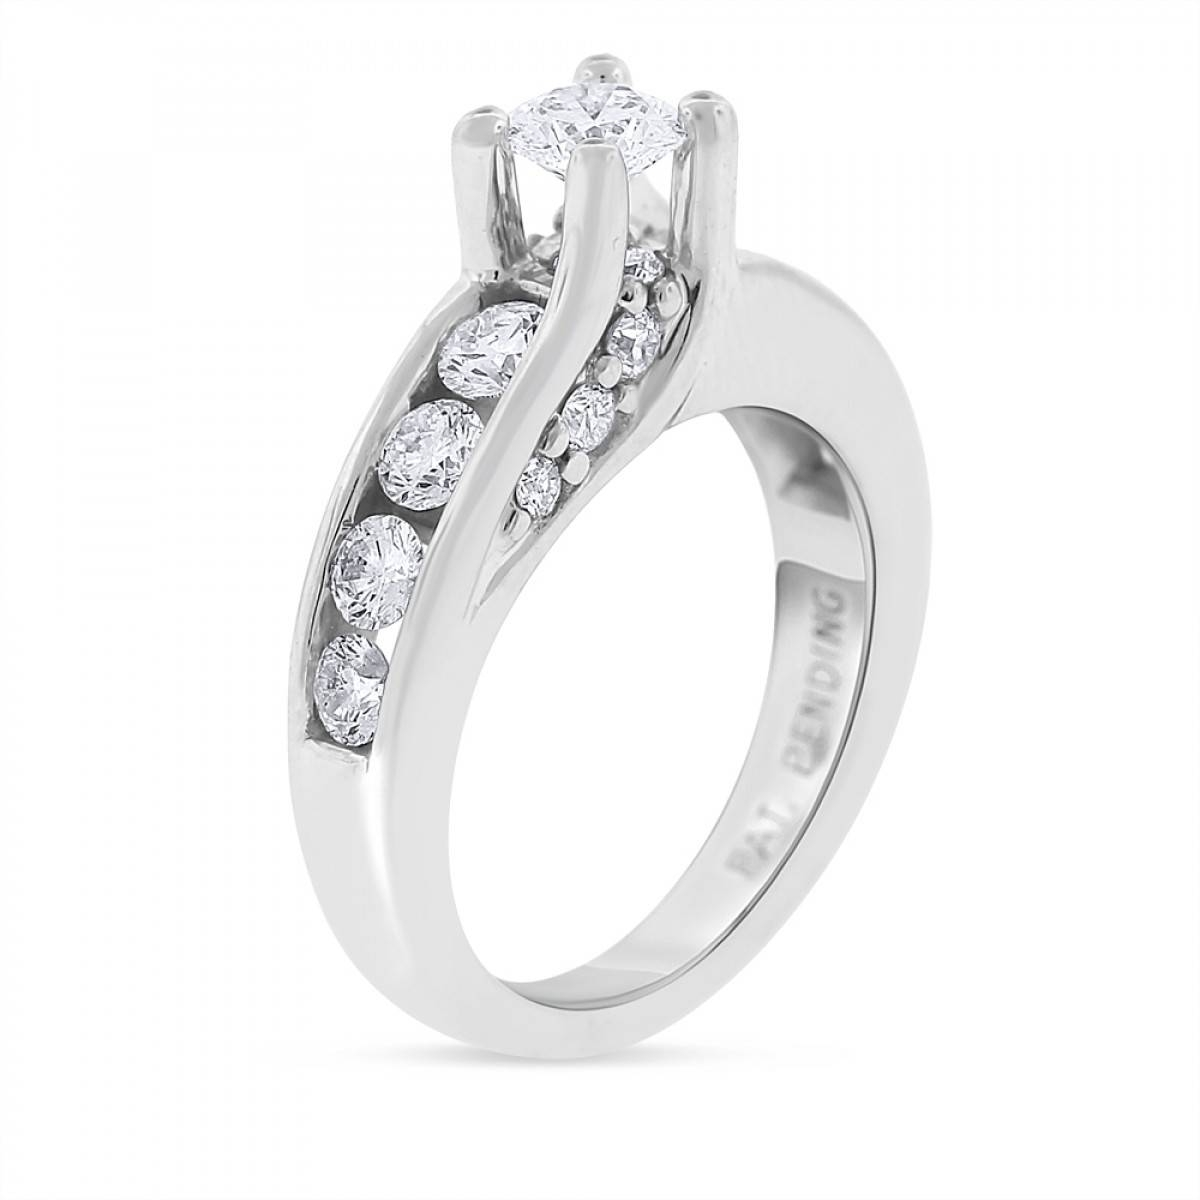 Floating Diamond Engagement Ring Titanium – Floating Diamond Throughout Floating Diamond Engagement Rings (View 11 of 15)